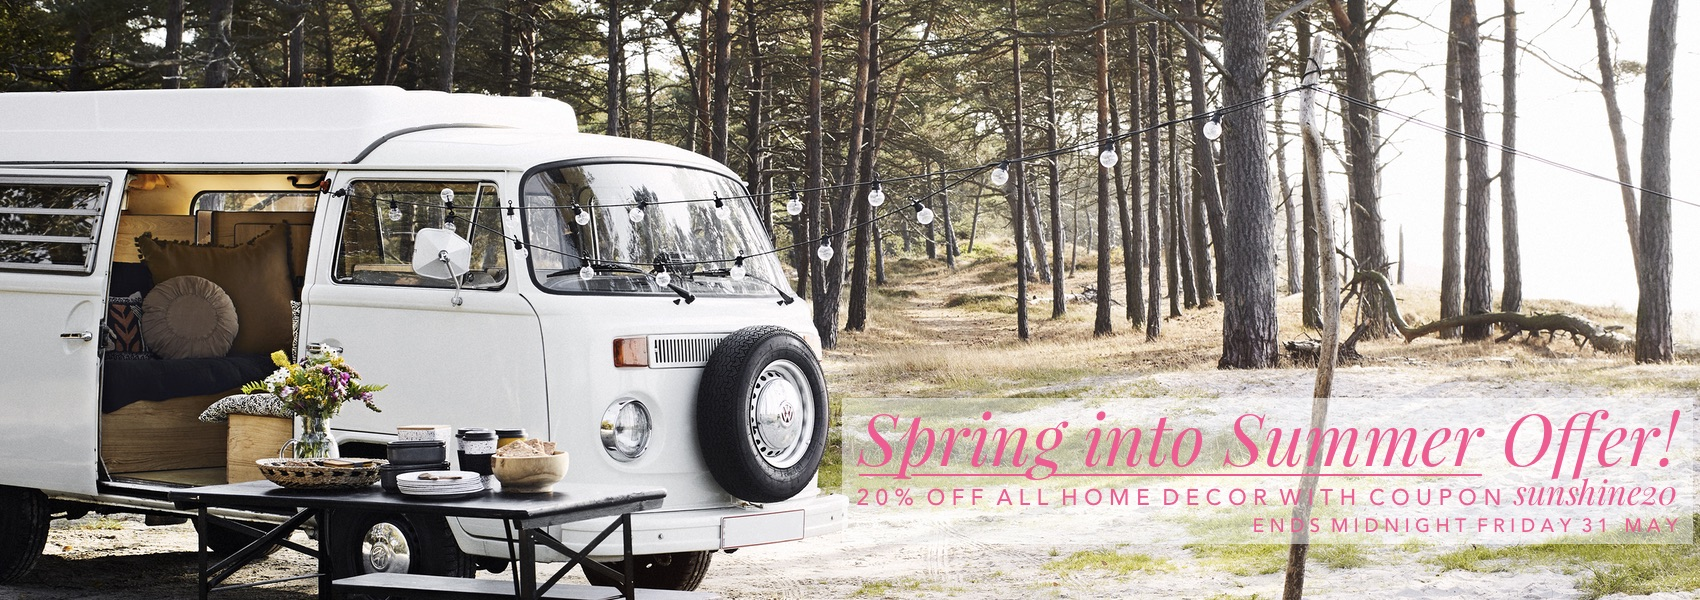 Spring Into Summer Offer - Save 20% off Home Decor Until 31 May with coupon sunshine20